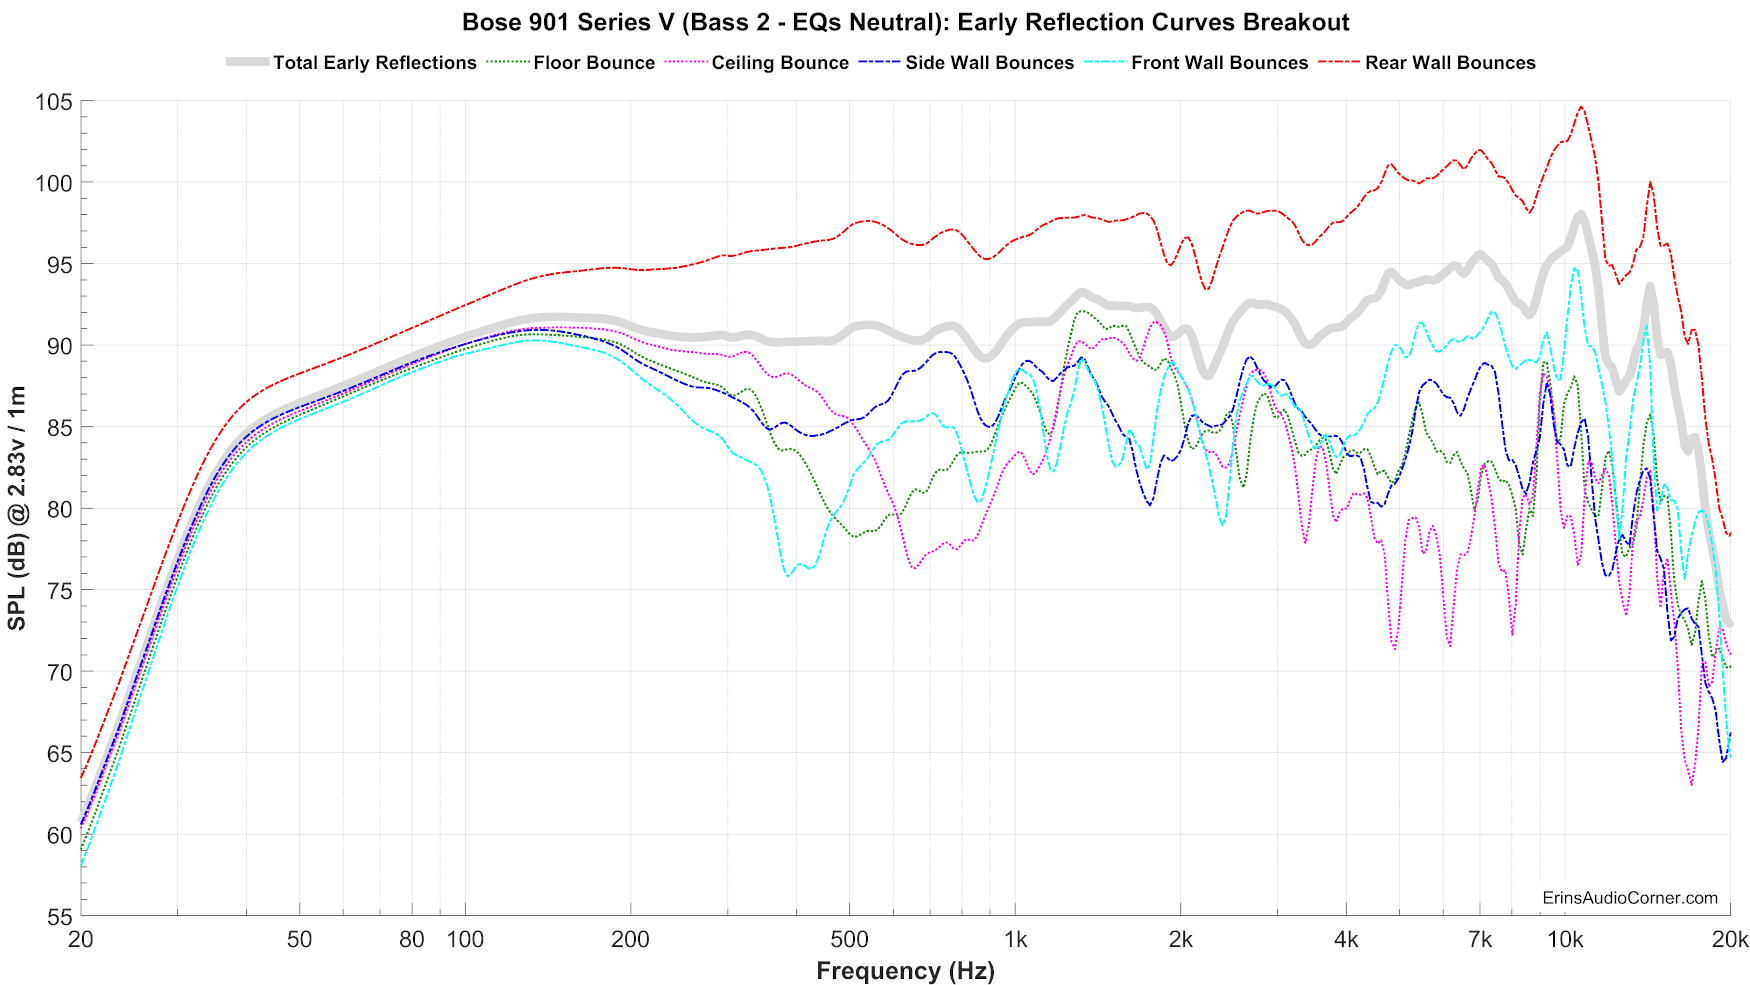 Bose%20901%20Series%20V%20(Bass%202%20-%20EQs%20Neutral)_Early_Reflections_Breakout.png